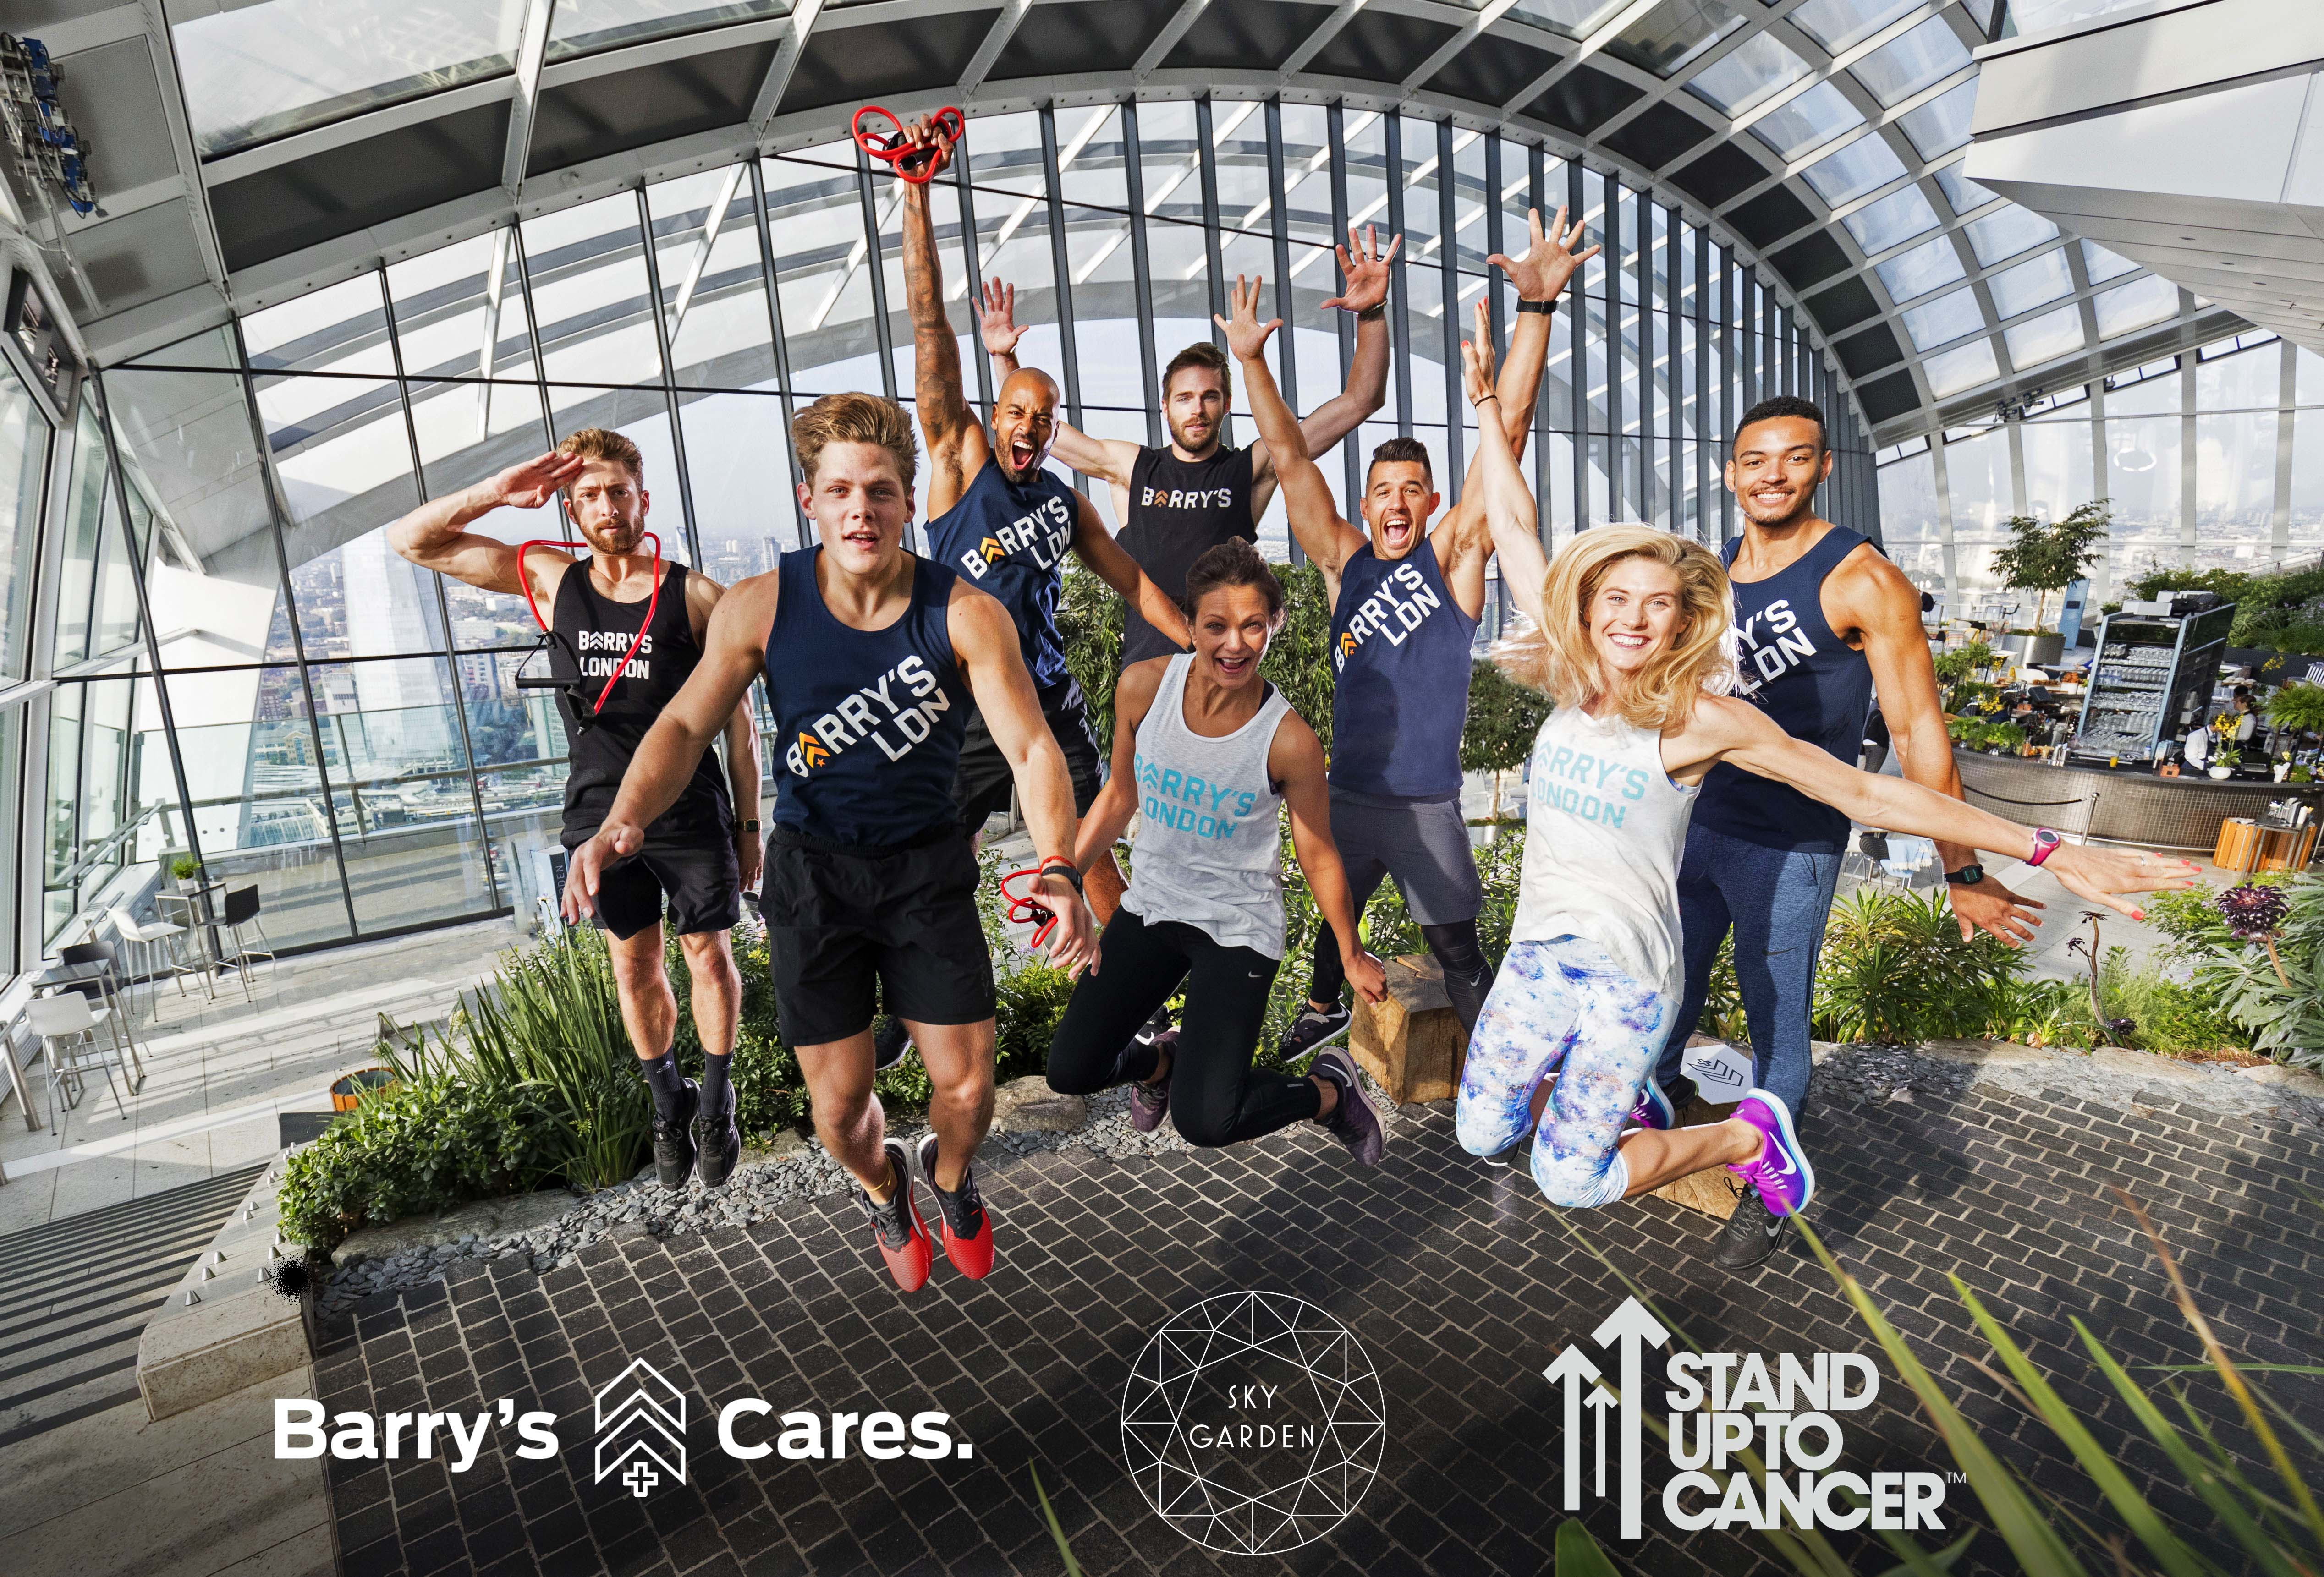 Barry's Bootcamp instructors jumping in London Sky Garden with Barry's Cares, Sky Garden, and Stand up to Cancer logos